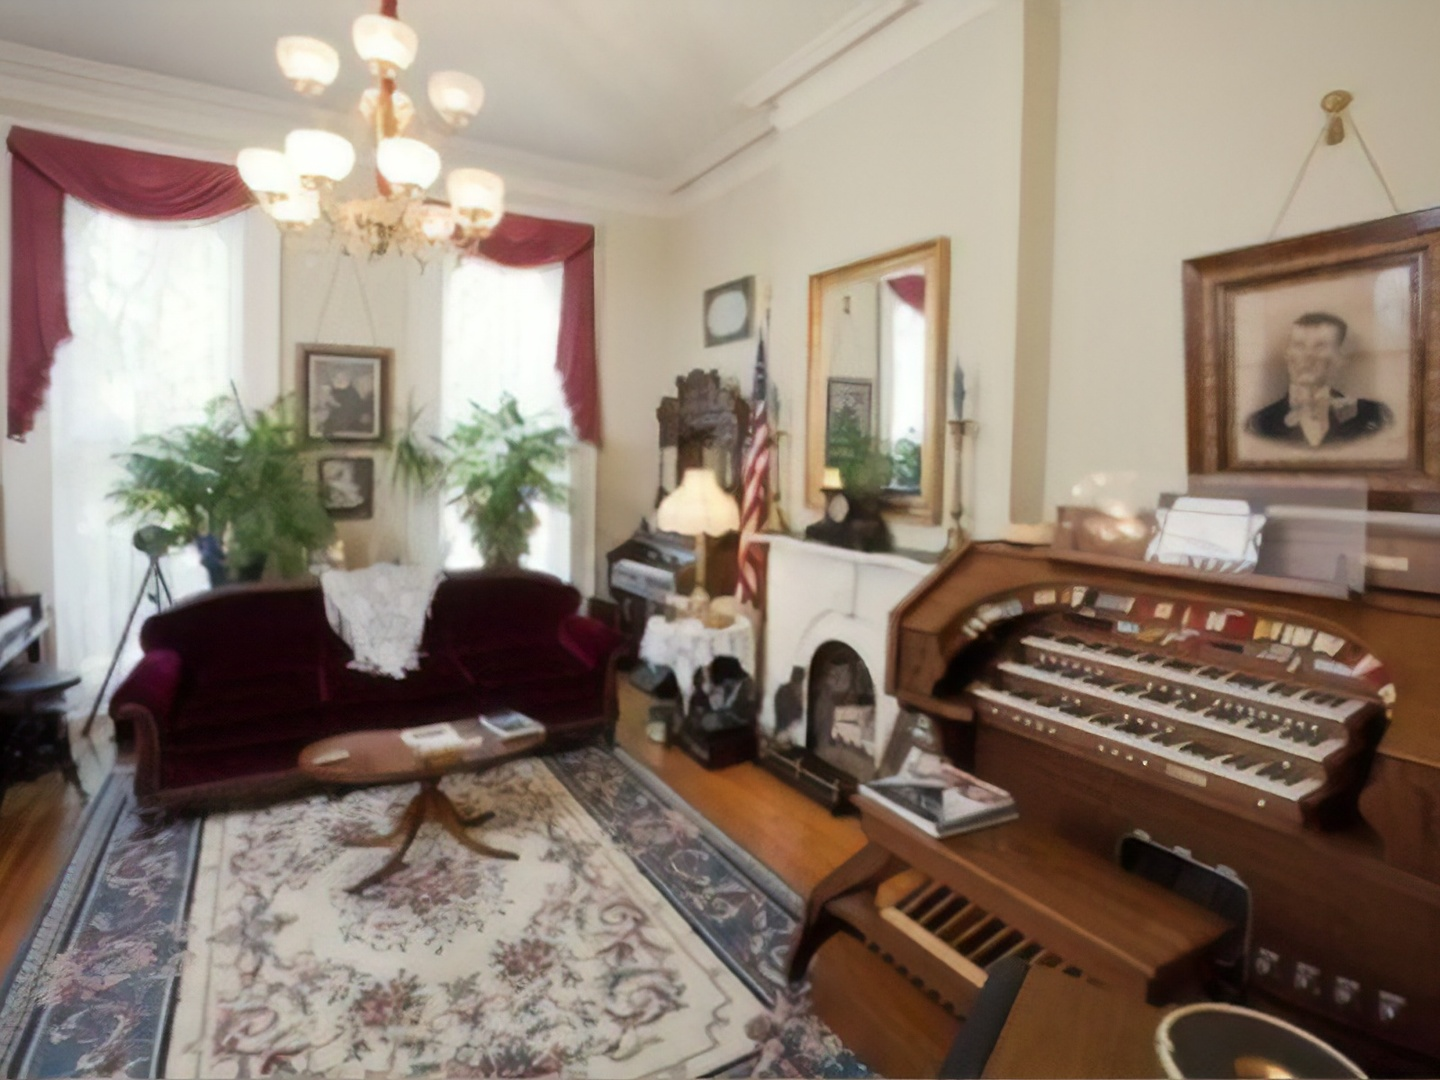 A living room filled with furniture and a fire place at Gateway Bed and Breakfast.